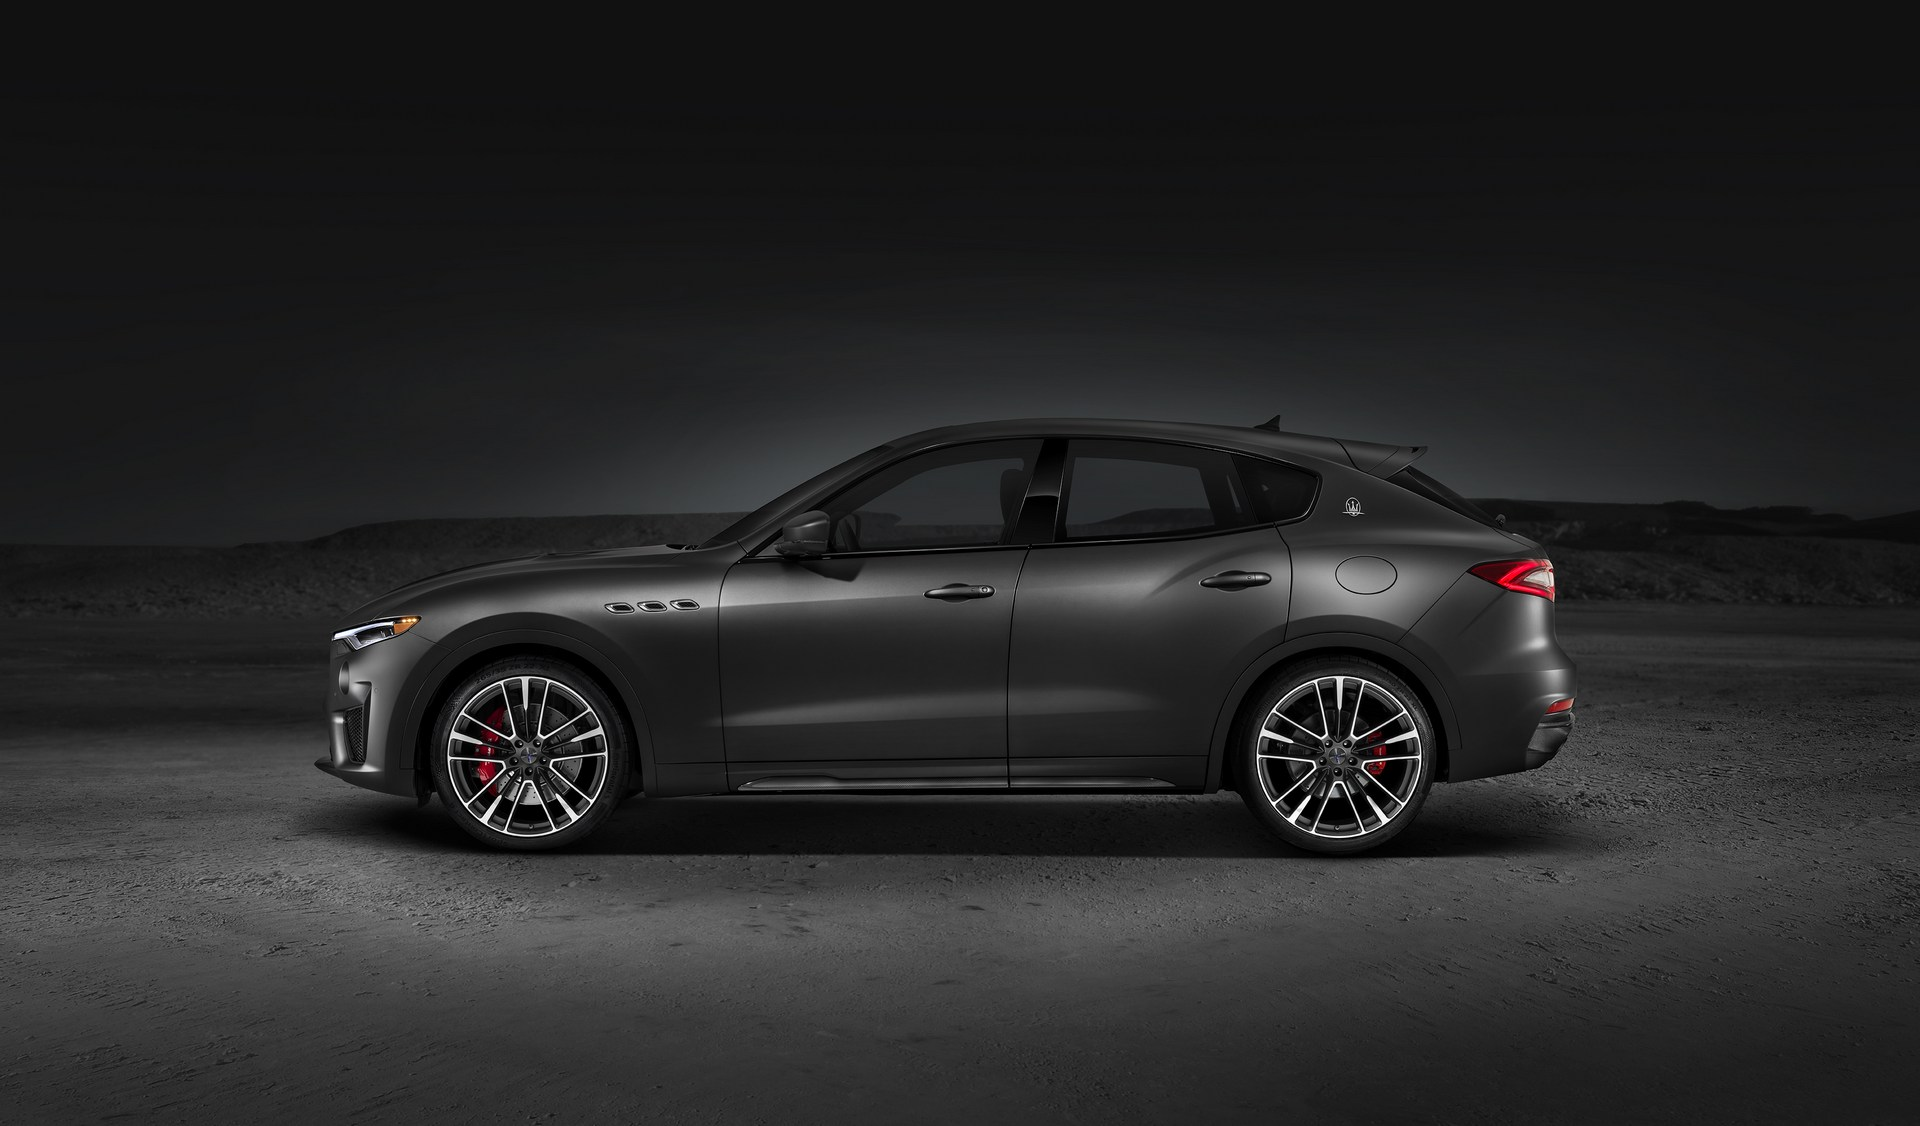 Maserati Ghibli S Q4 >> 2019 Maserati Levante GTS is No Trofeo, Packs 550-HP V8 ...